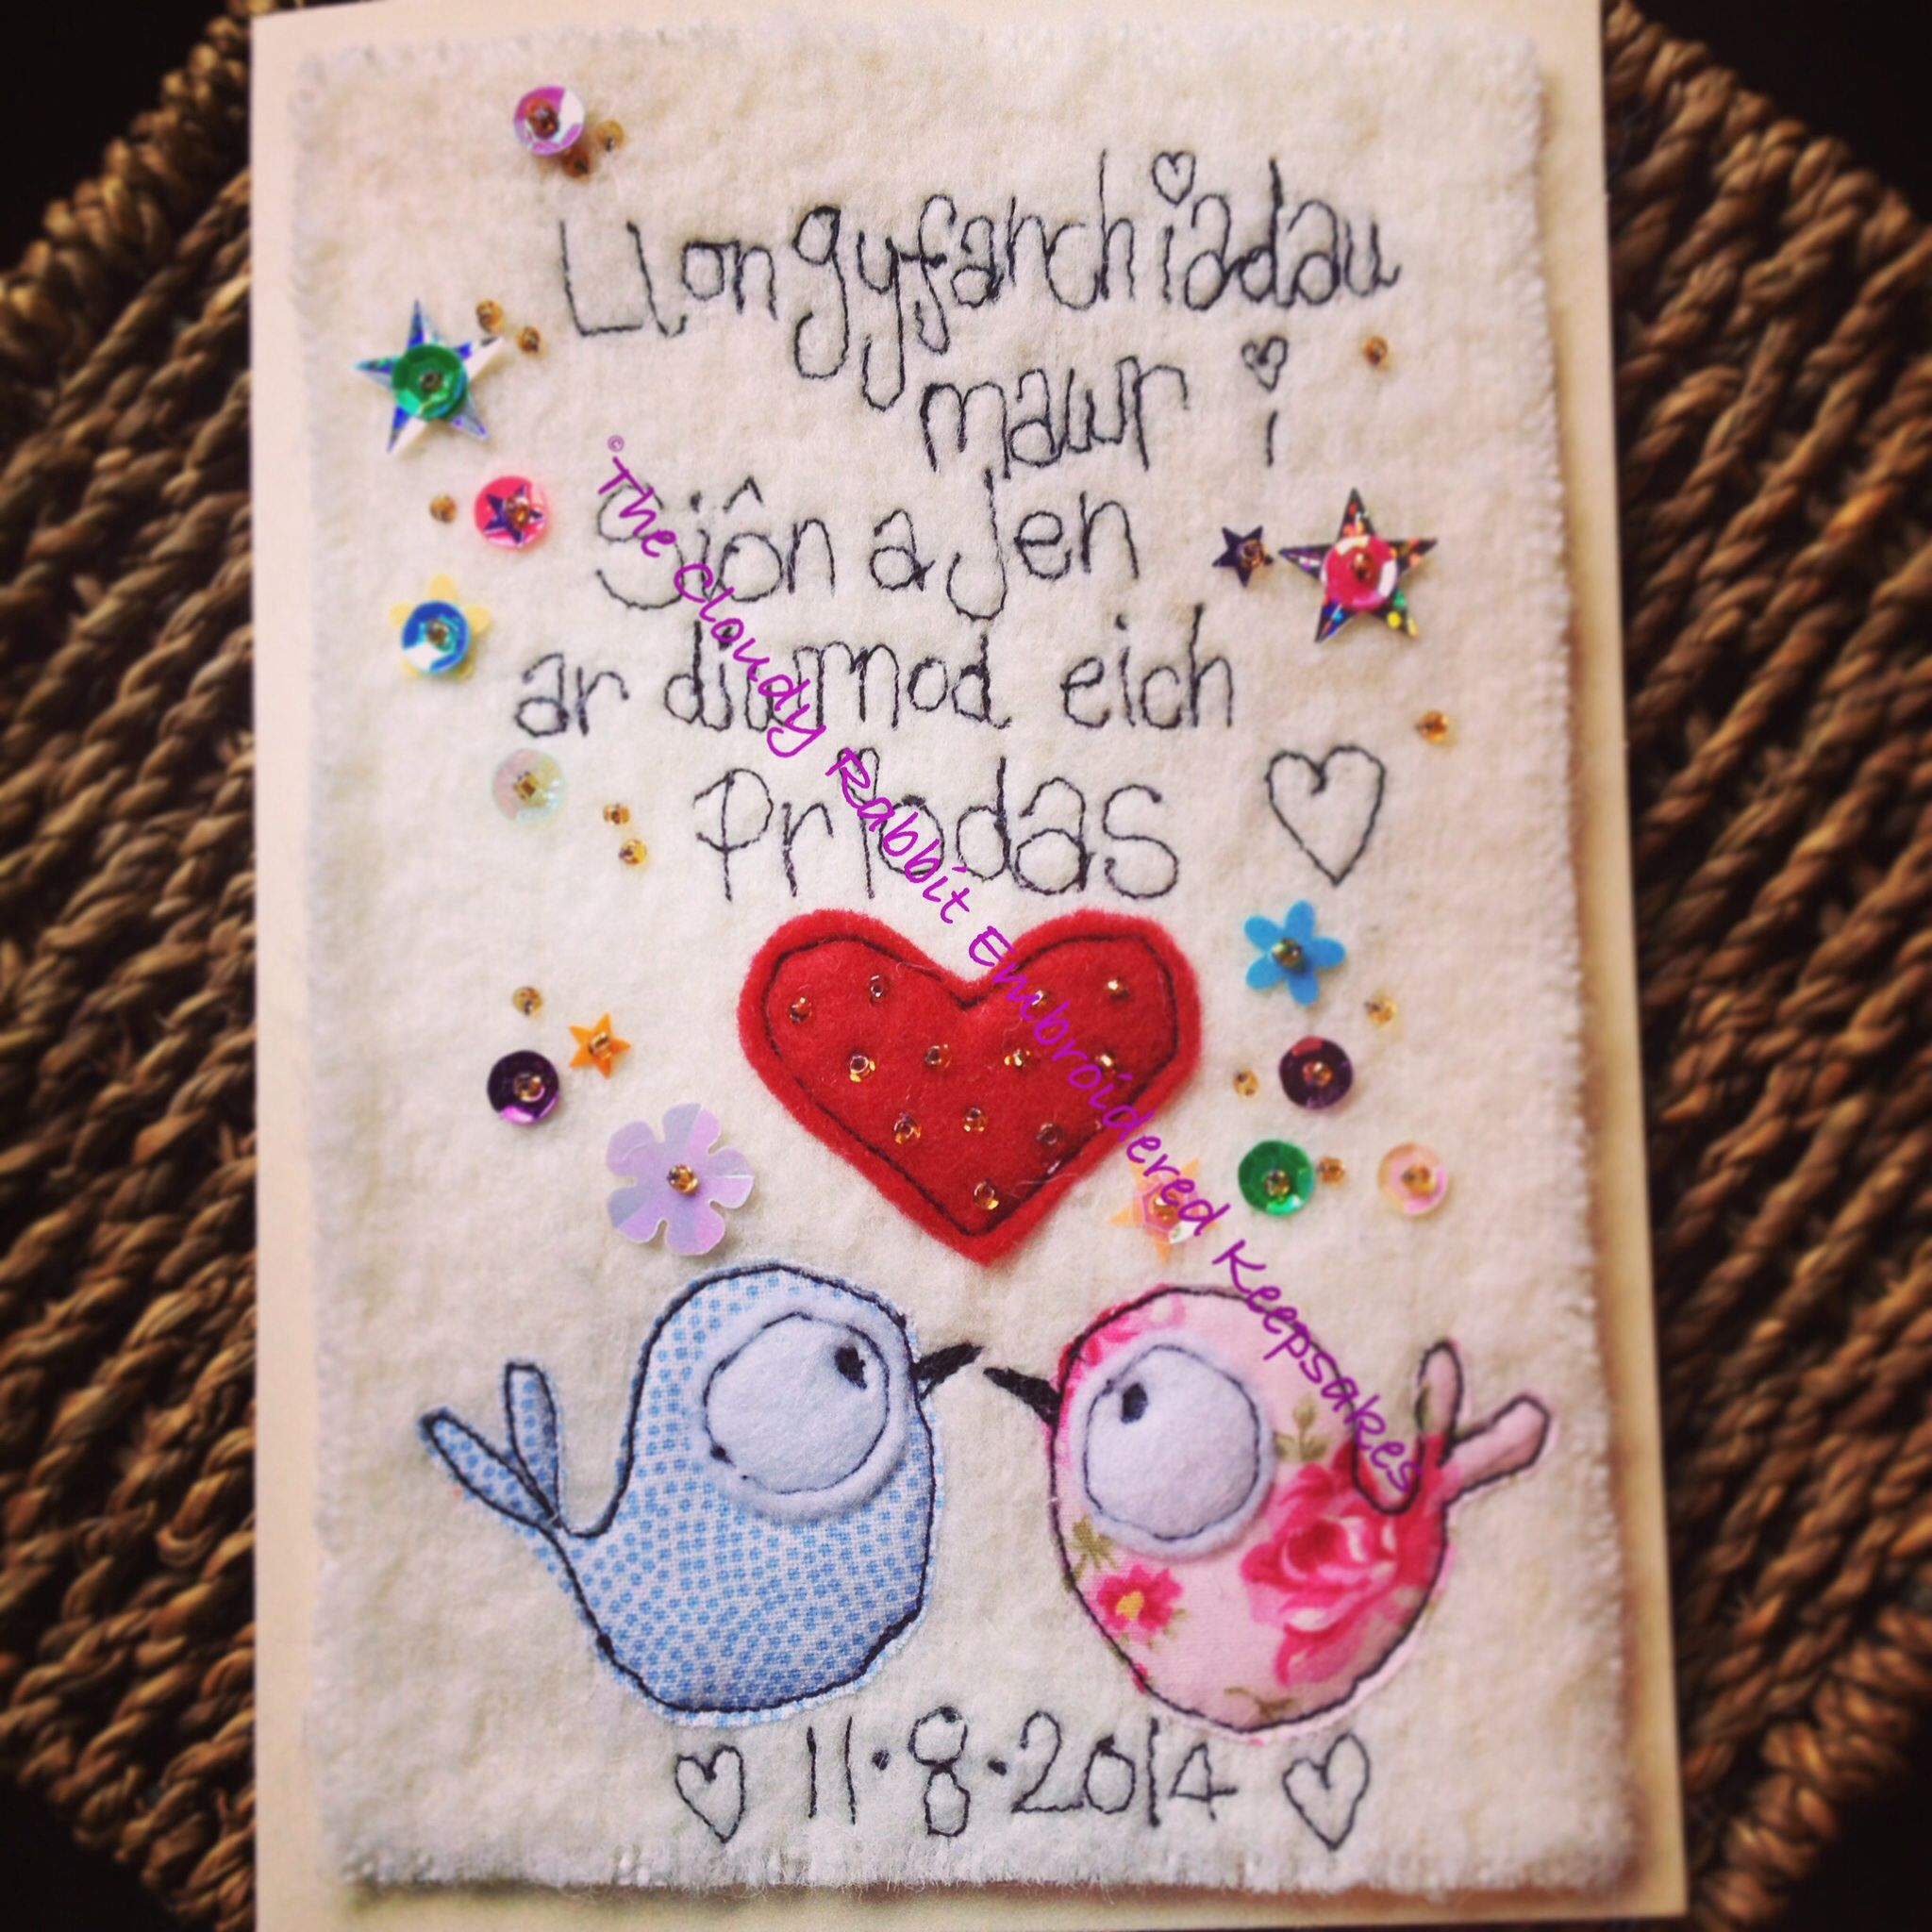 A Wedding Card Made With Welsh Txt It Reads Congratulations Sion